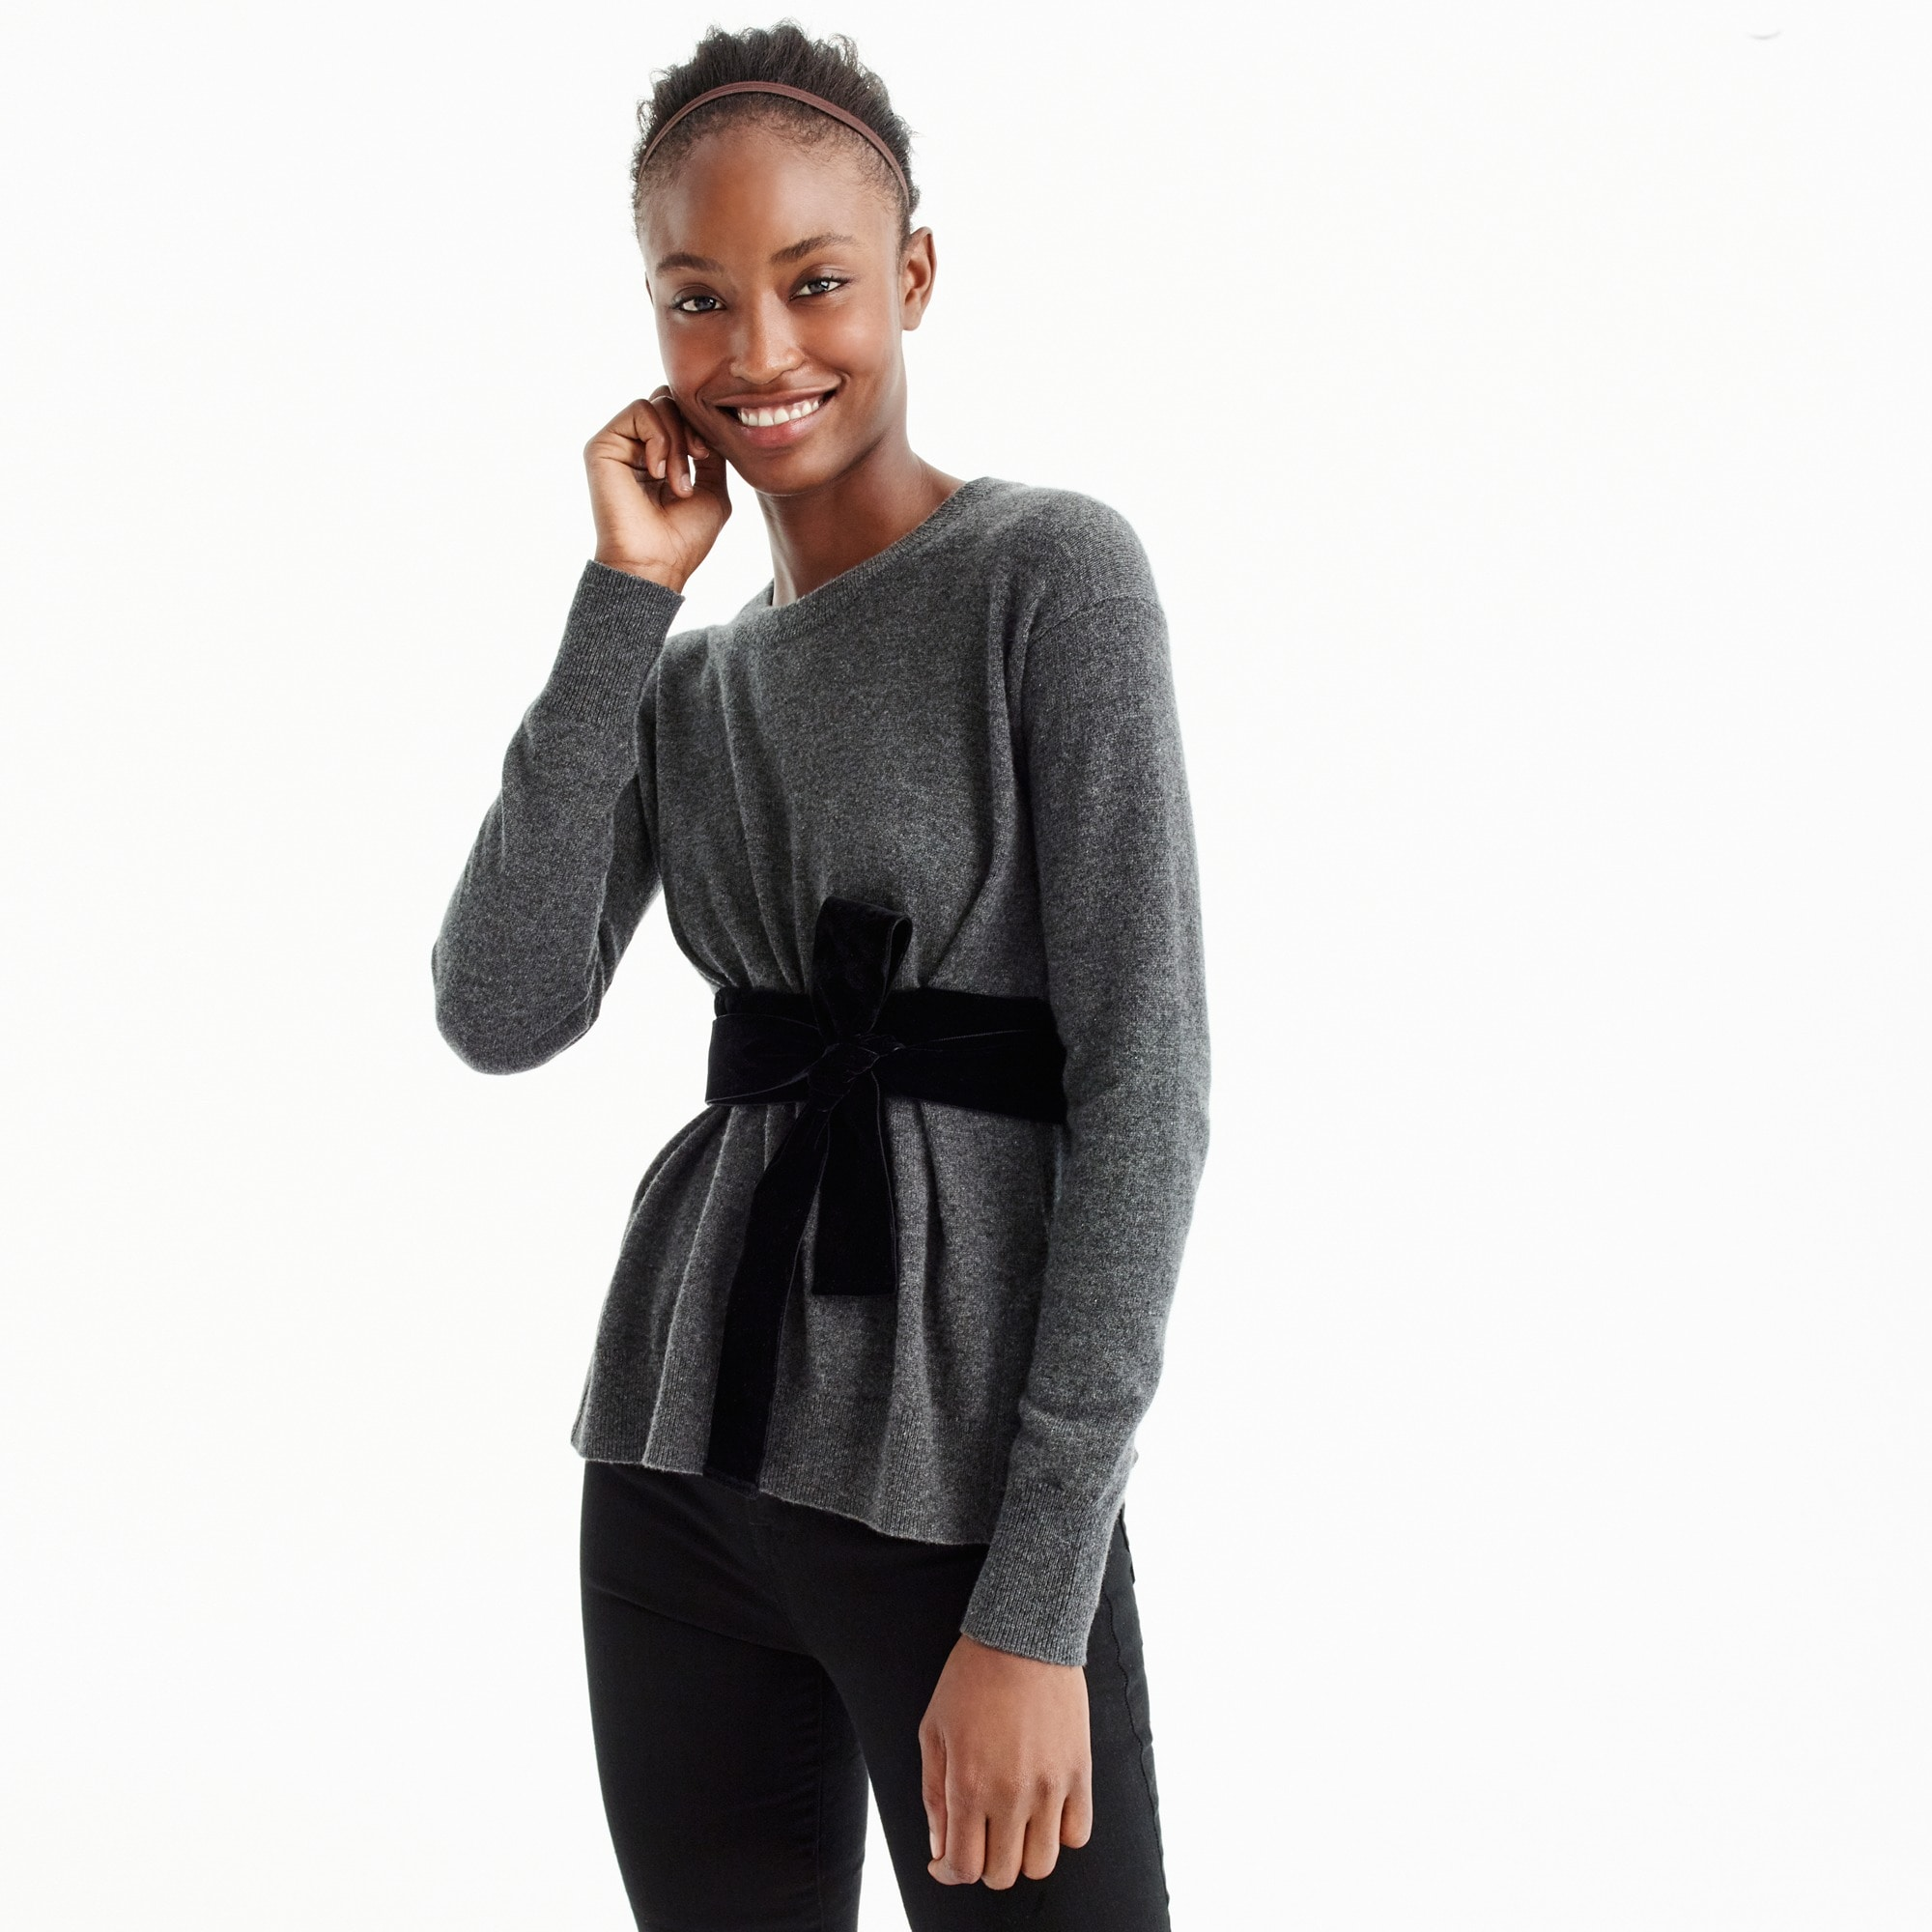 Crewneck sweater with velvet sash in everyday cashmere